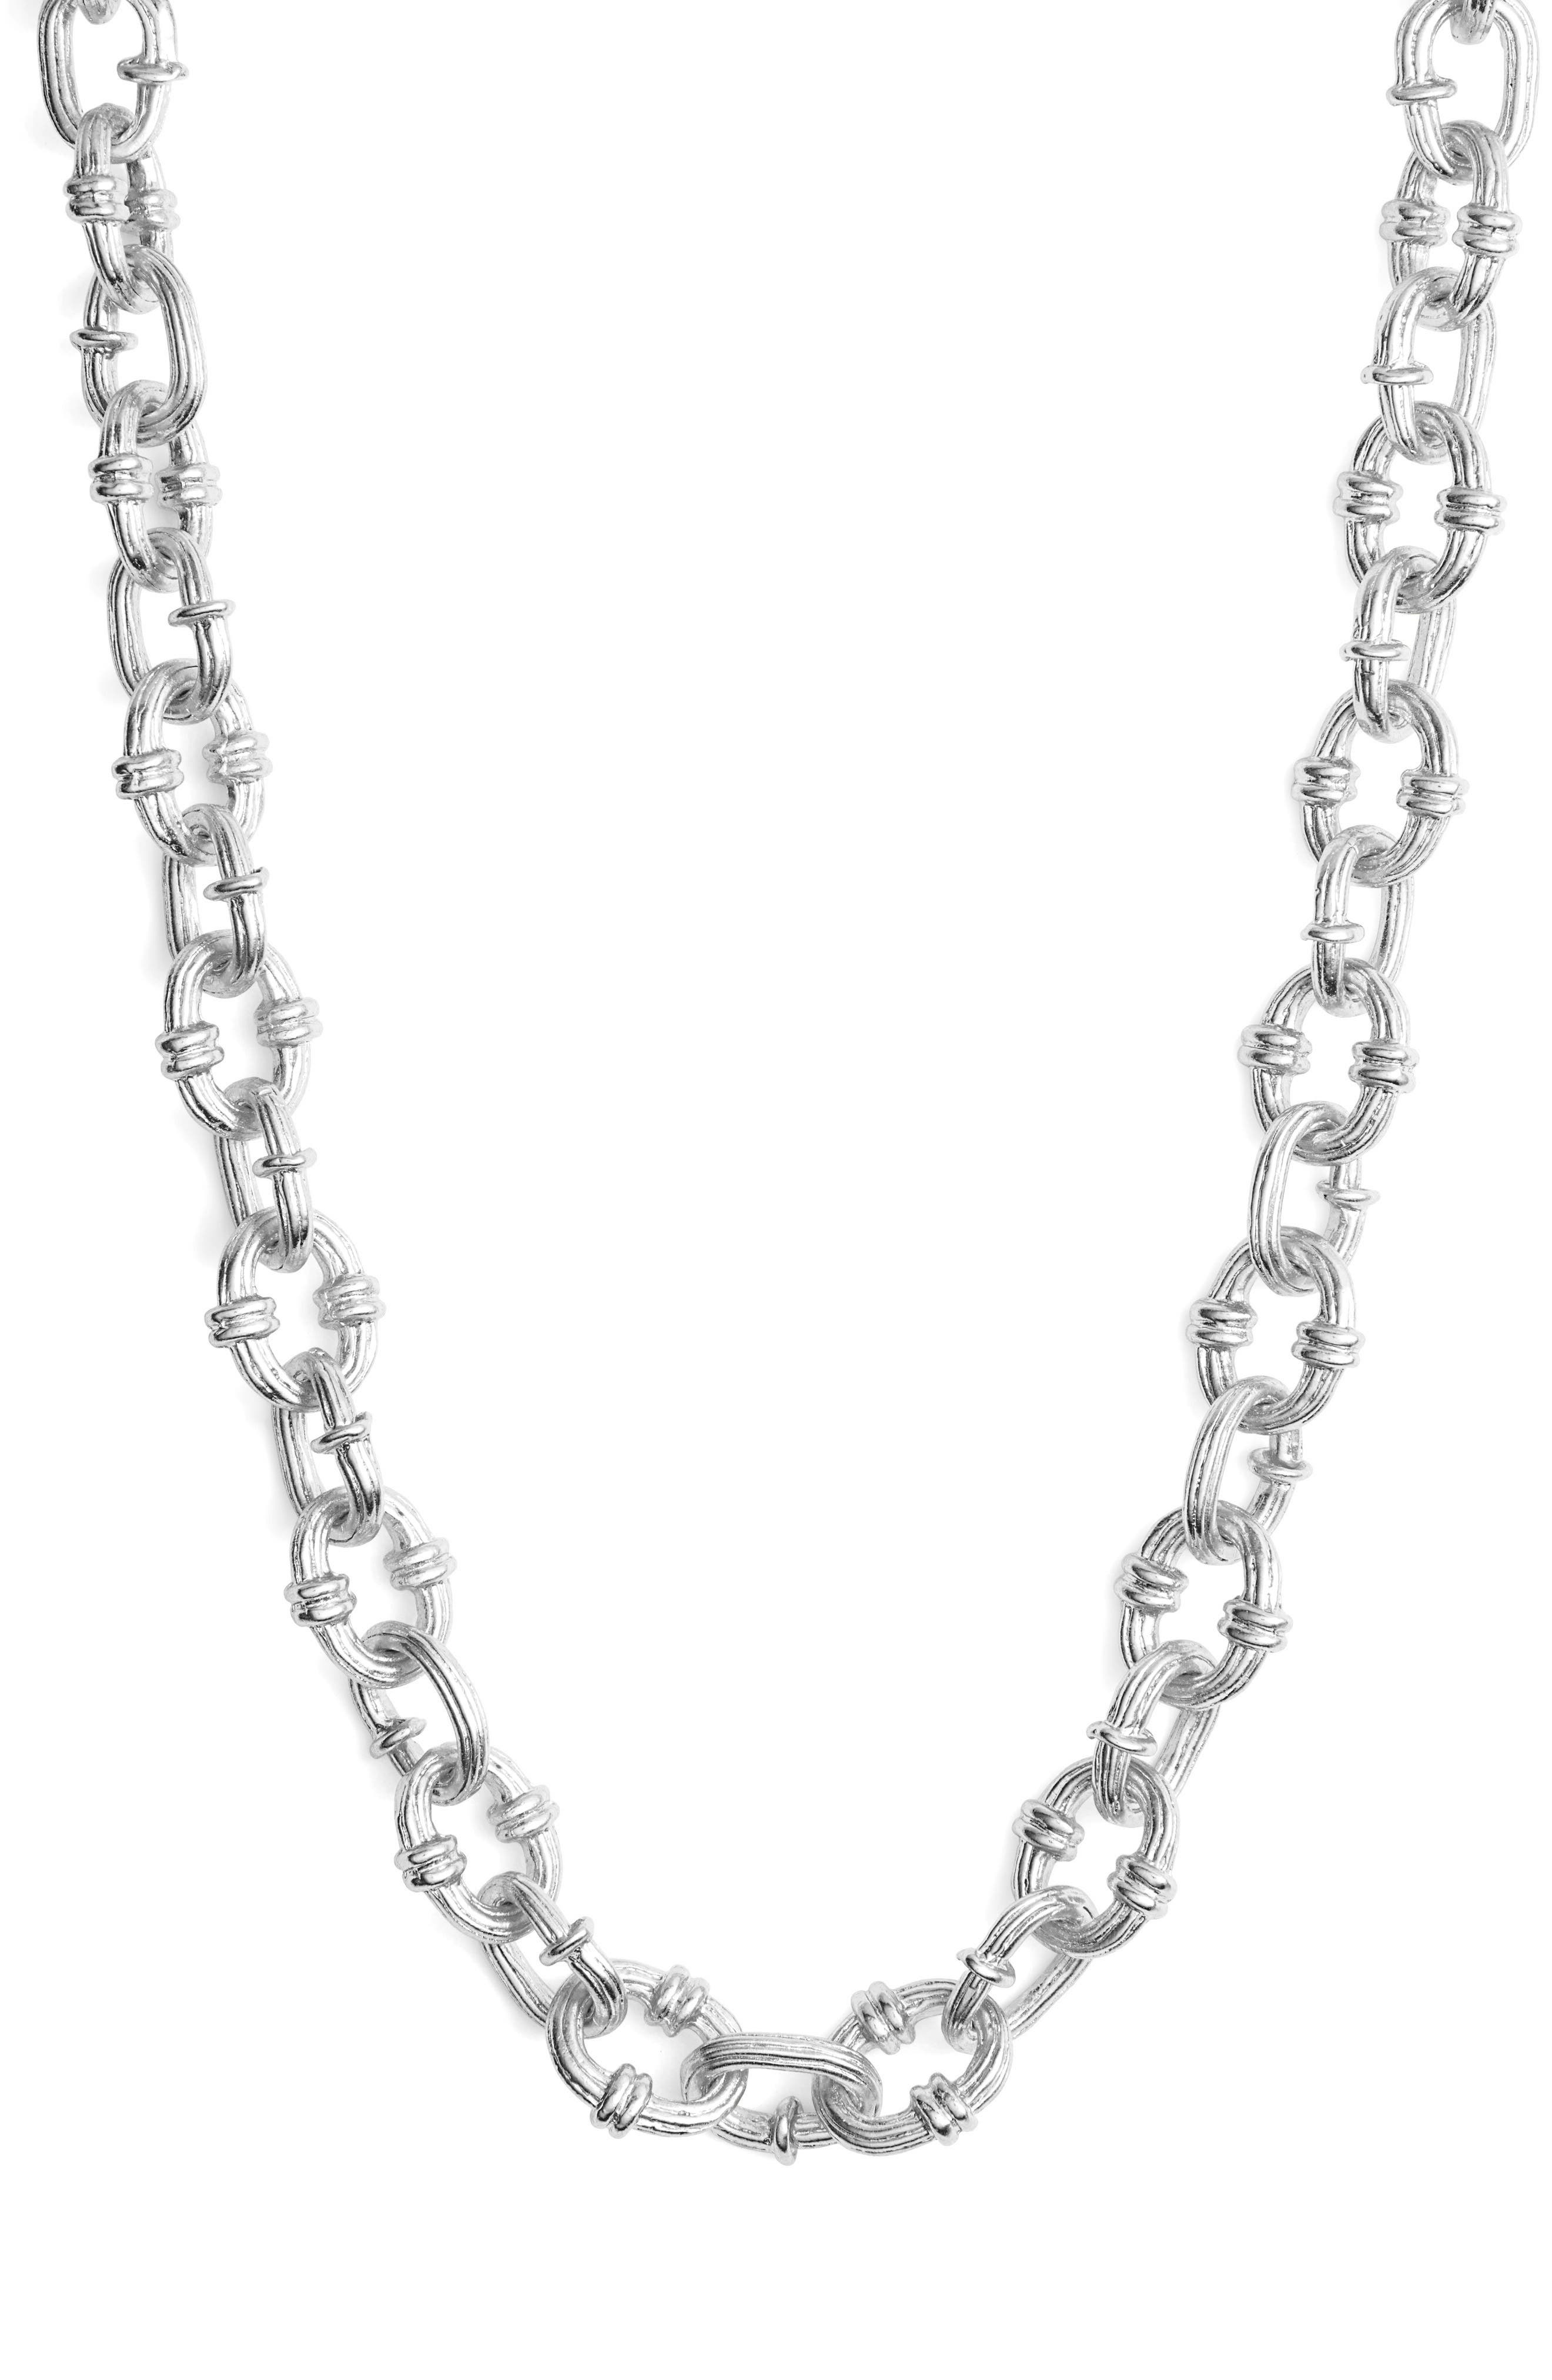 KARINE SULTAN Textured Chain Necklace, Main, color, SILVER